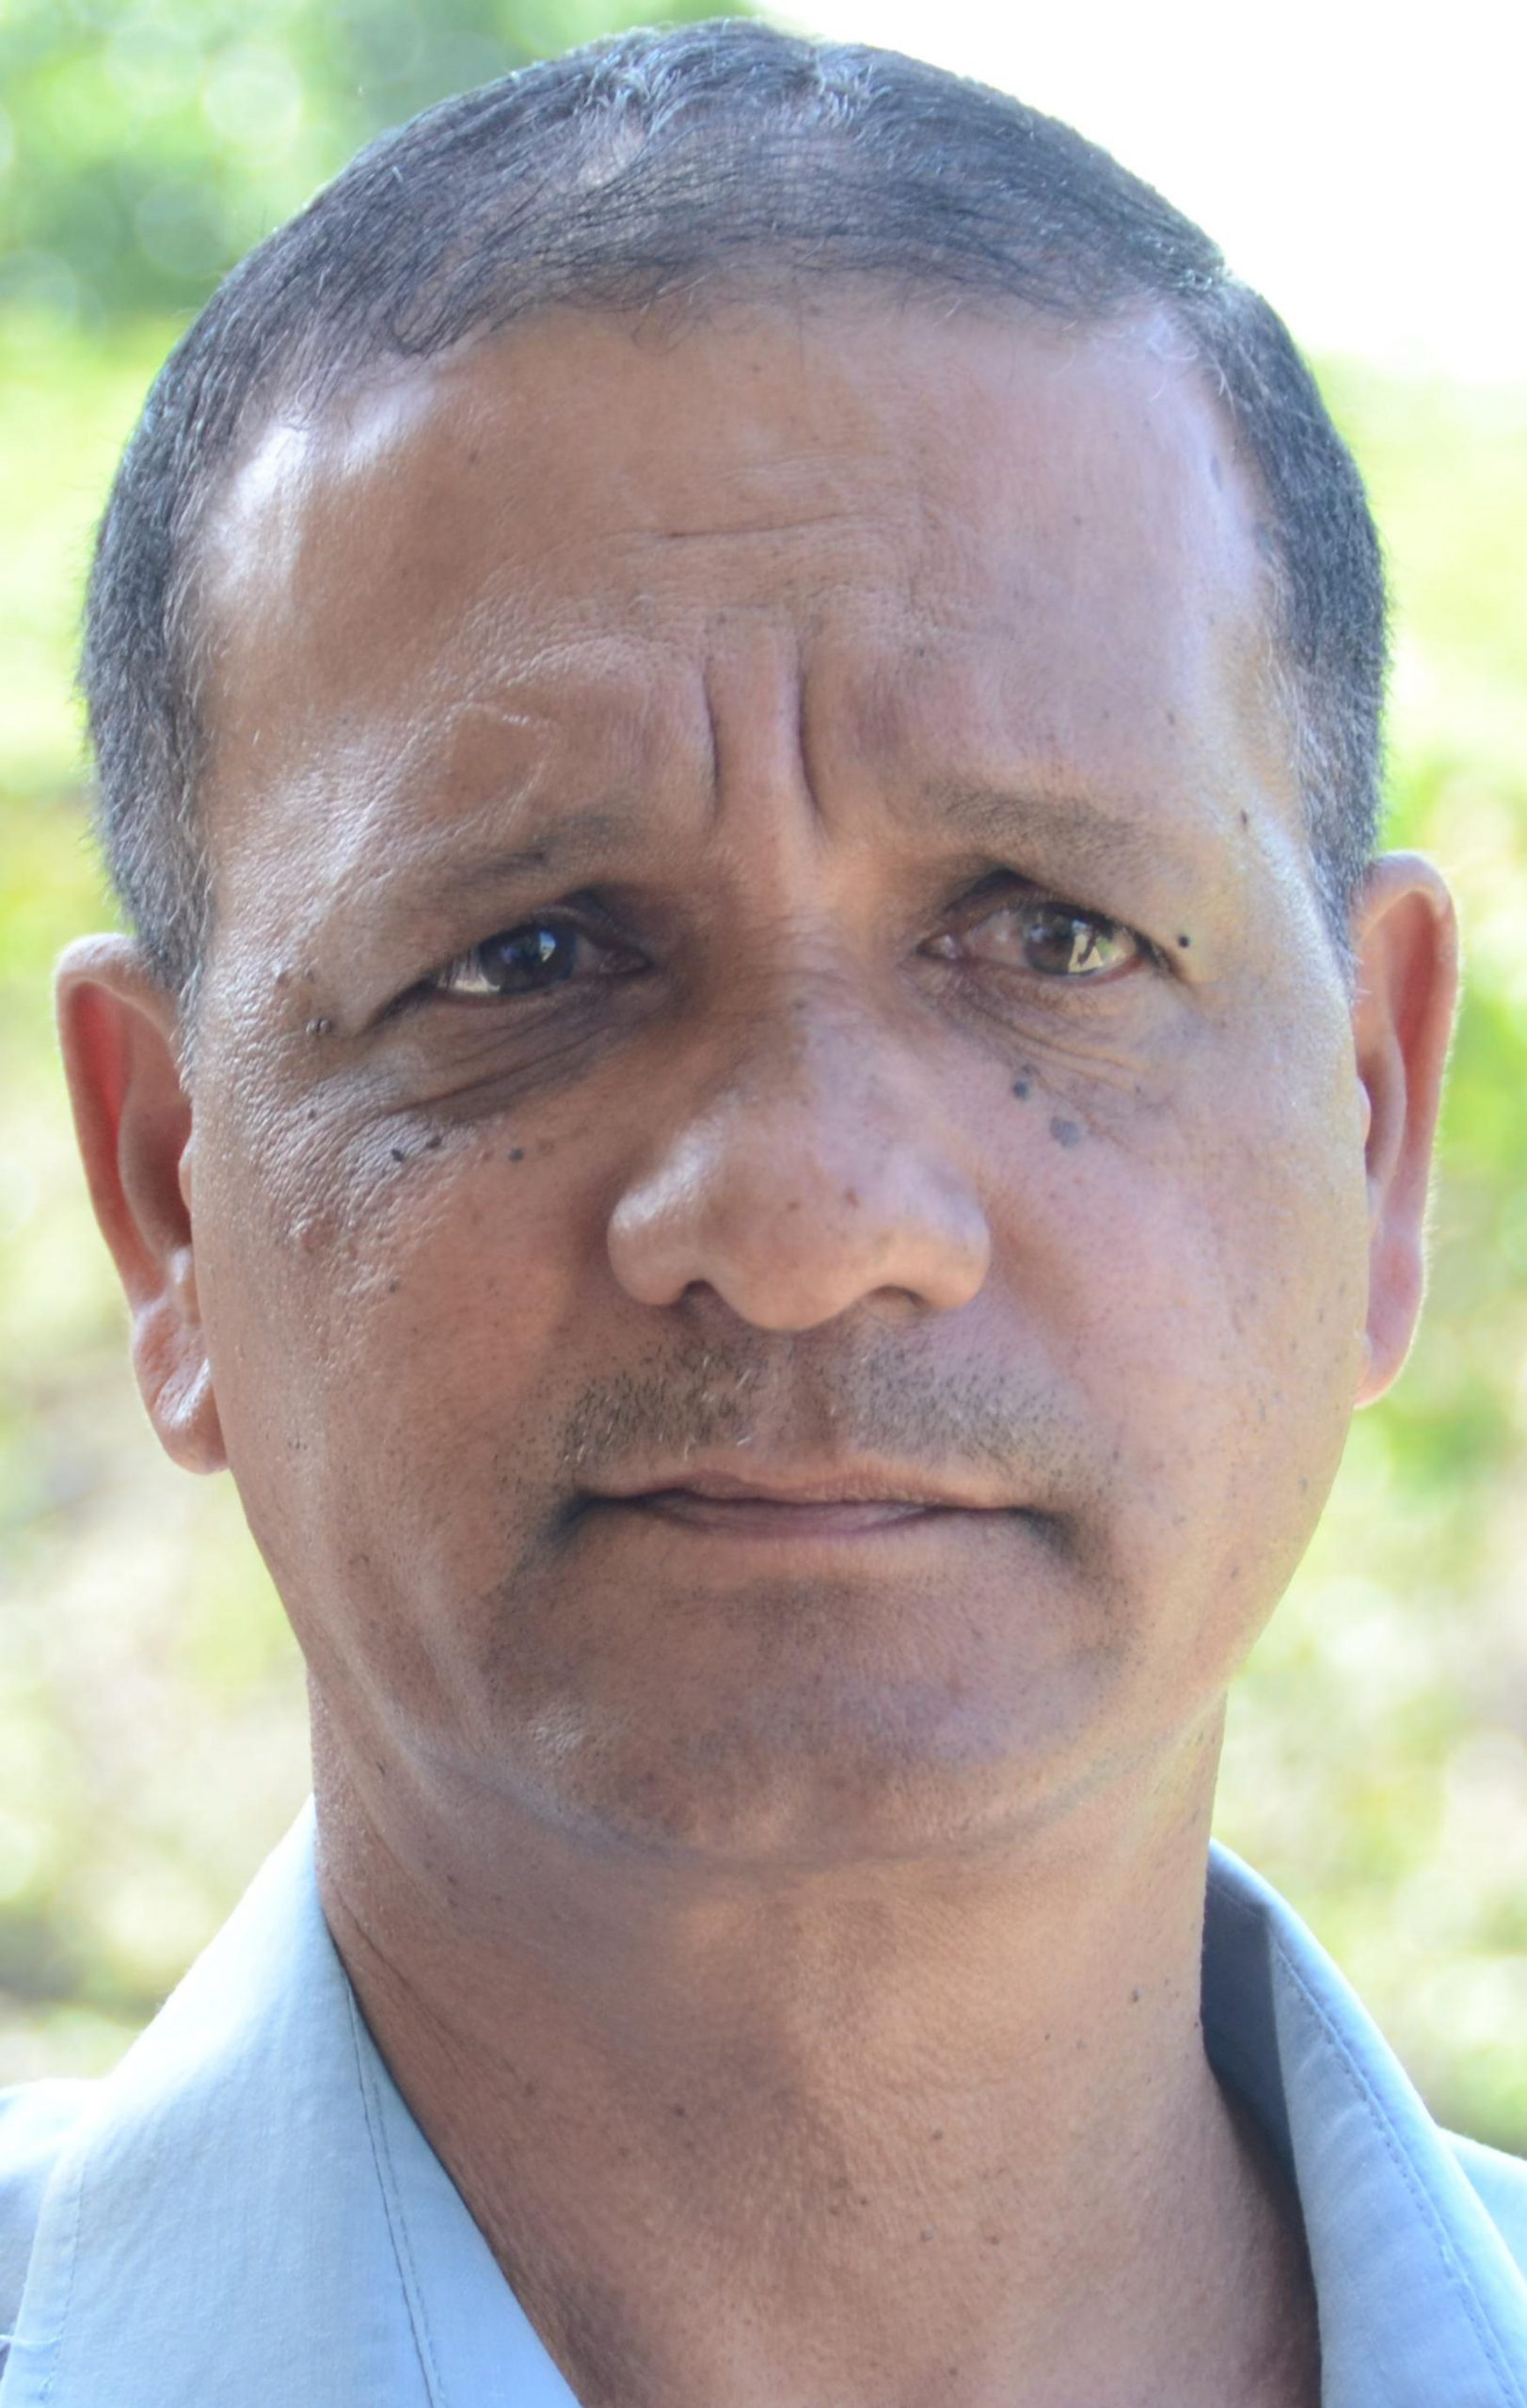 Local gov't chair defends unilateral appointment of city Town Clerk